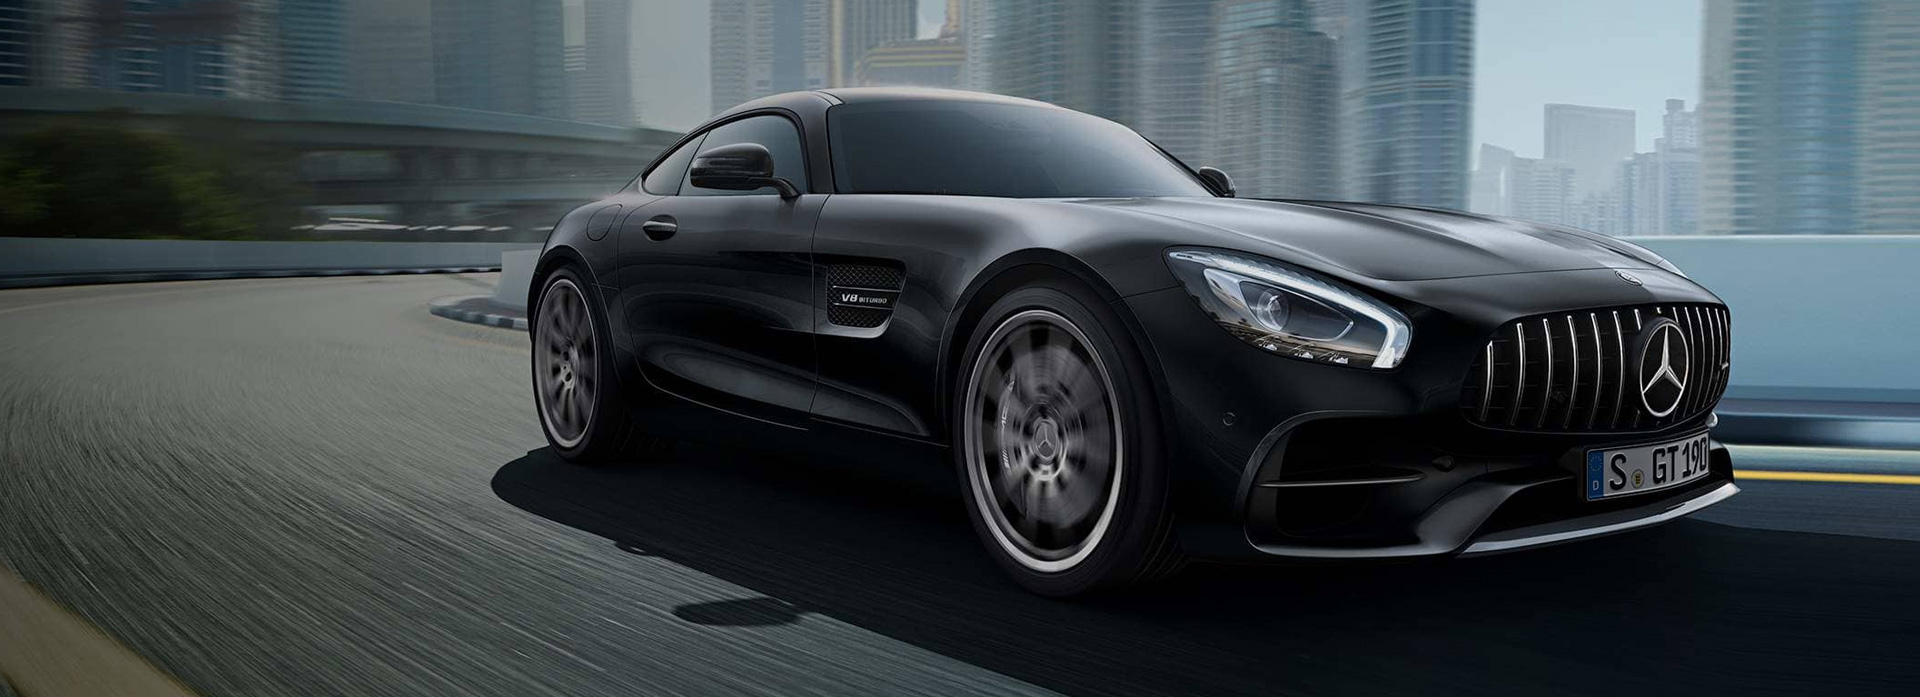 New Mercedes Amg Gt For Sale 2020 21 Amg Gt Deals Jct600